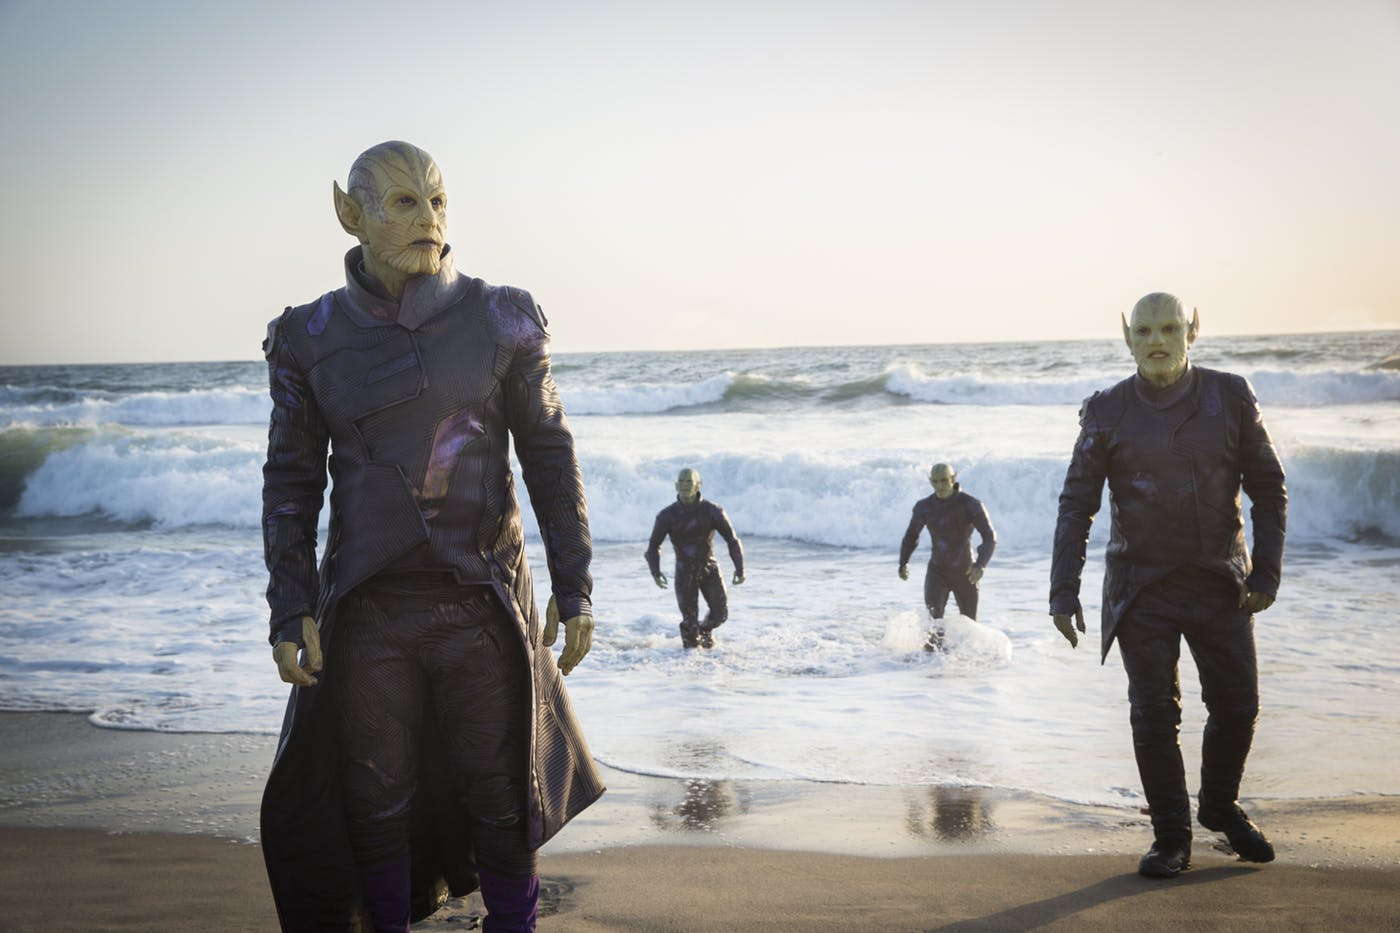 Modeled various costume pieces for the Skrulls which was then 3D printed and fabricated.